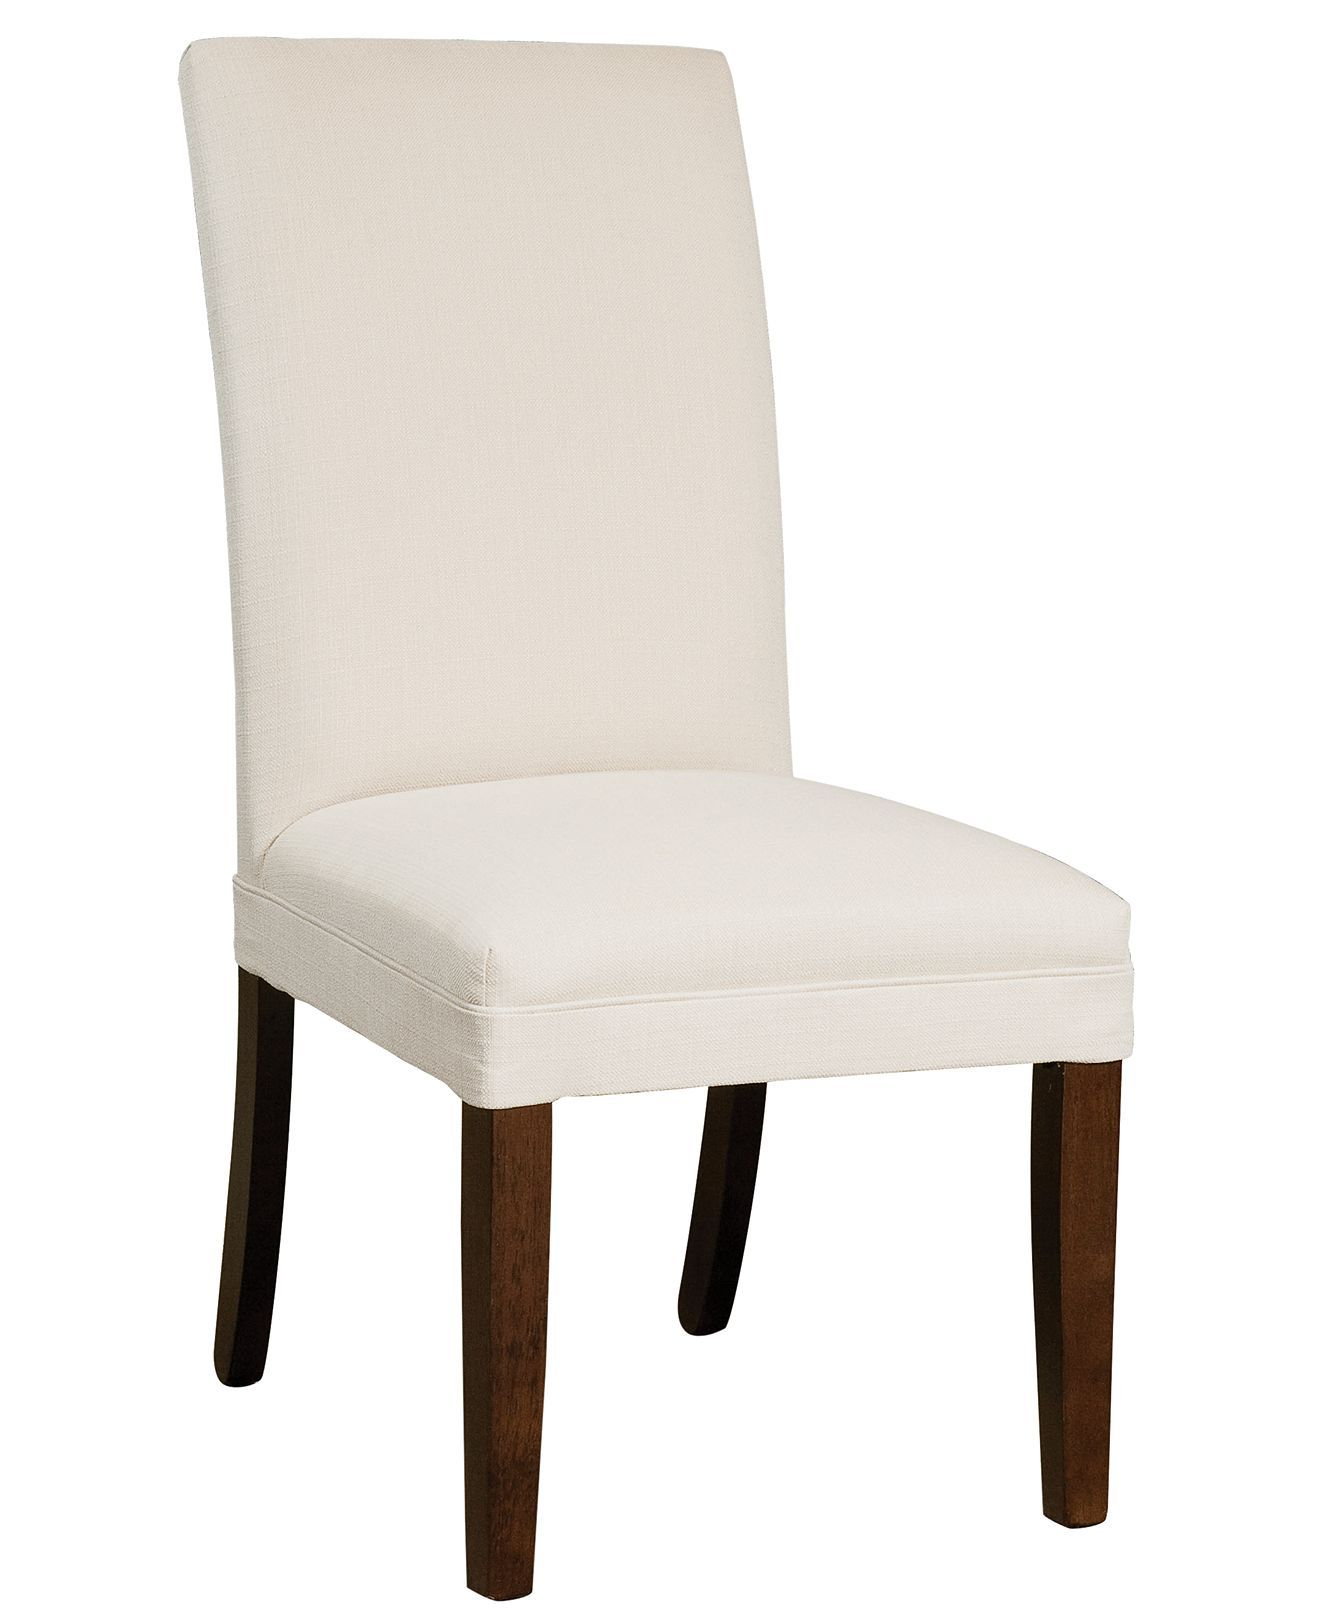 Warson Dining Chair Set Of 6  Furniture  Macys $979 For 6 Interesting Macys Dining Room Chairs Design Inspiration